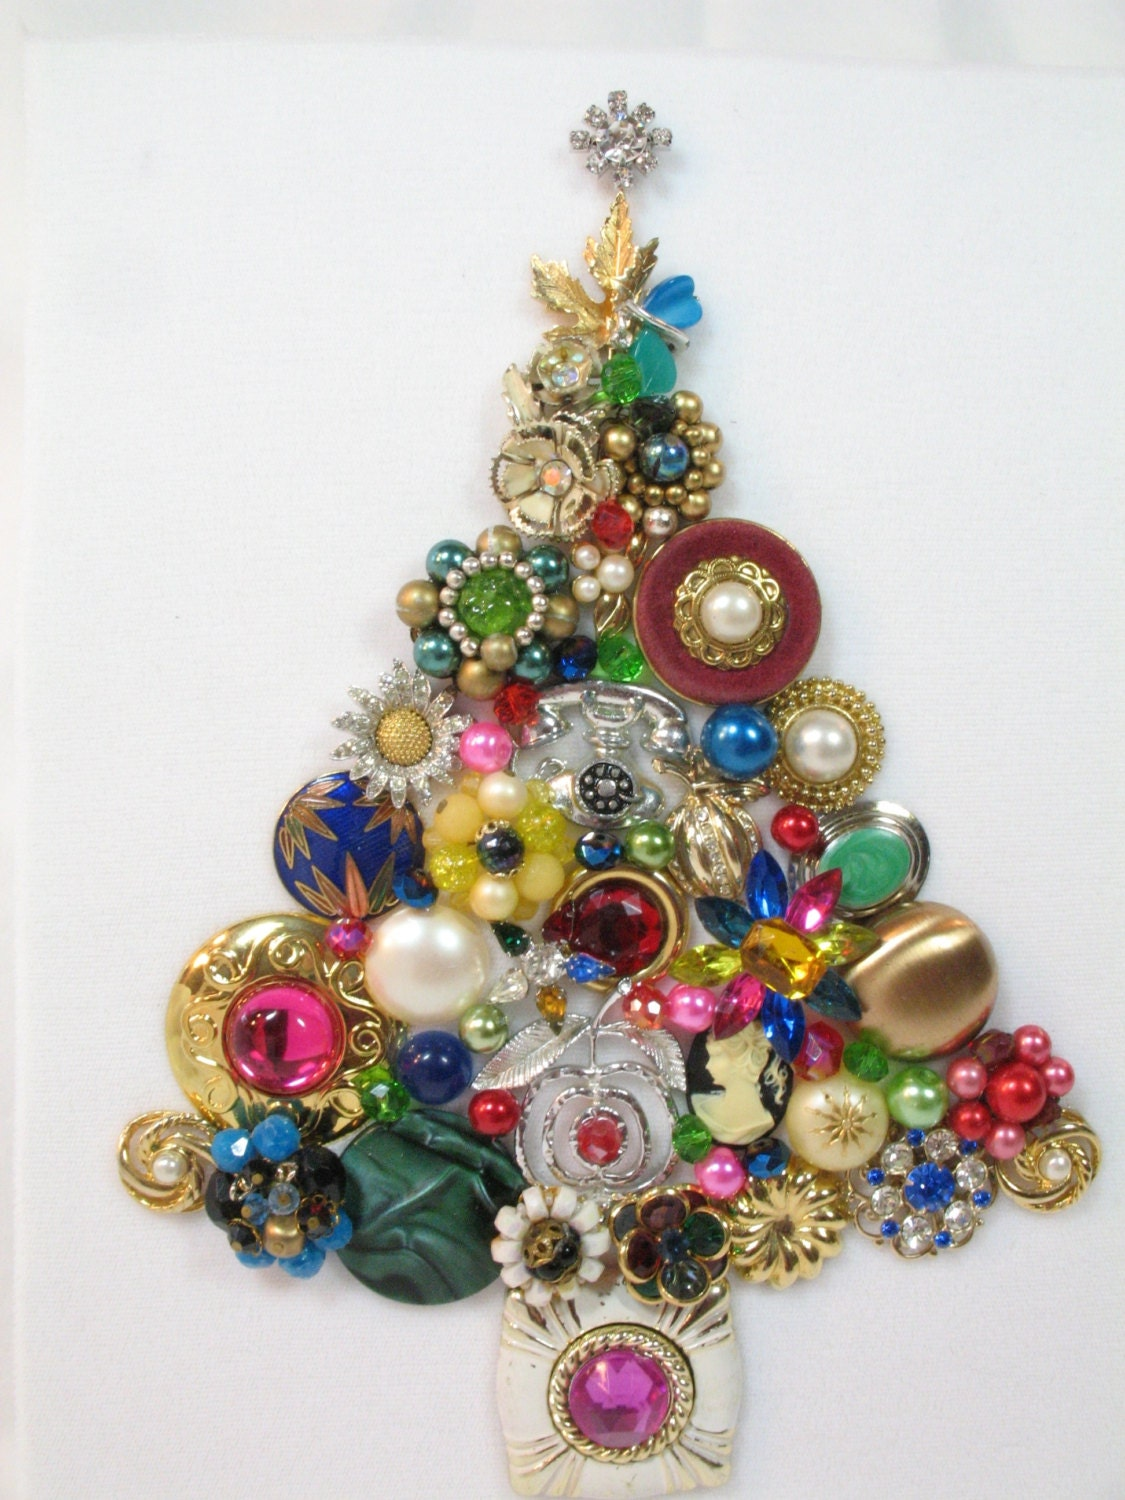 Framed Vintage Jewelry Christmas Tree Shiver by Sunny Day